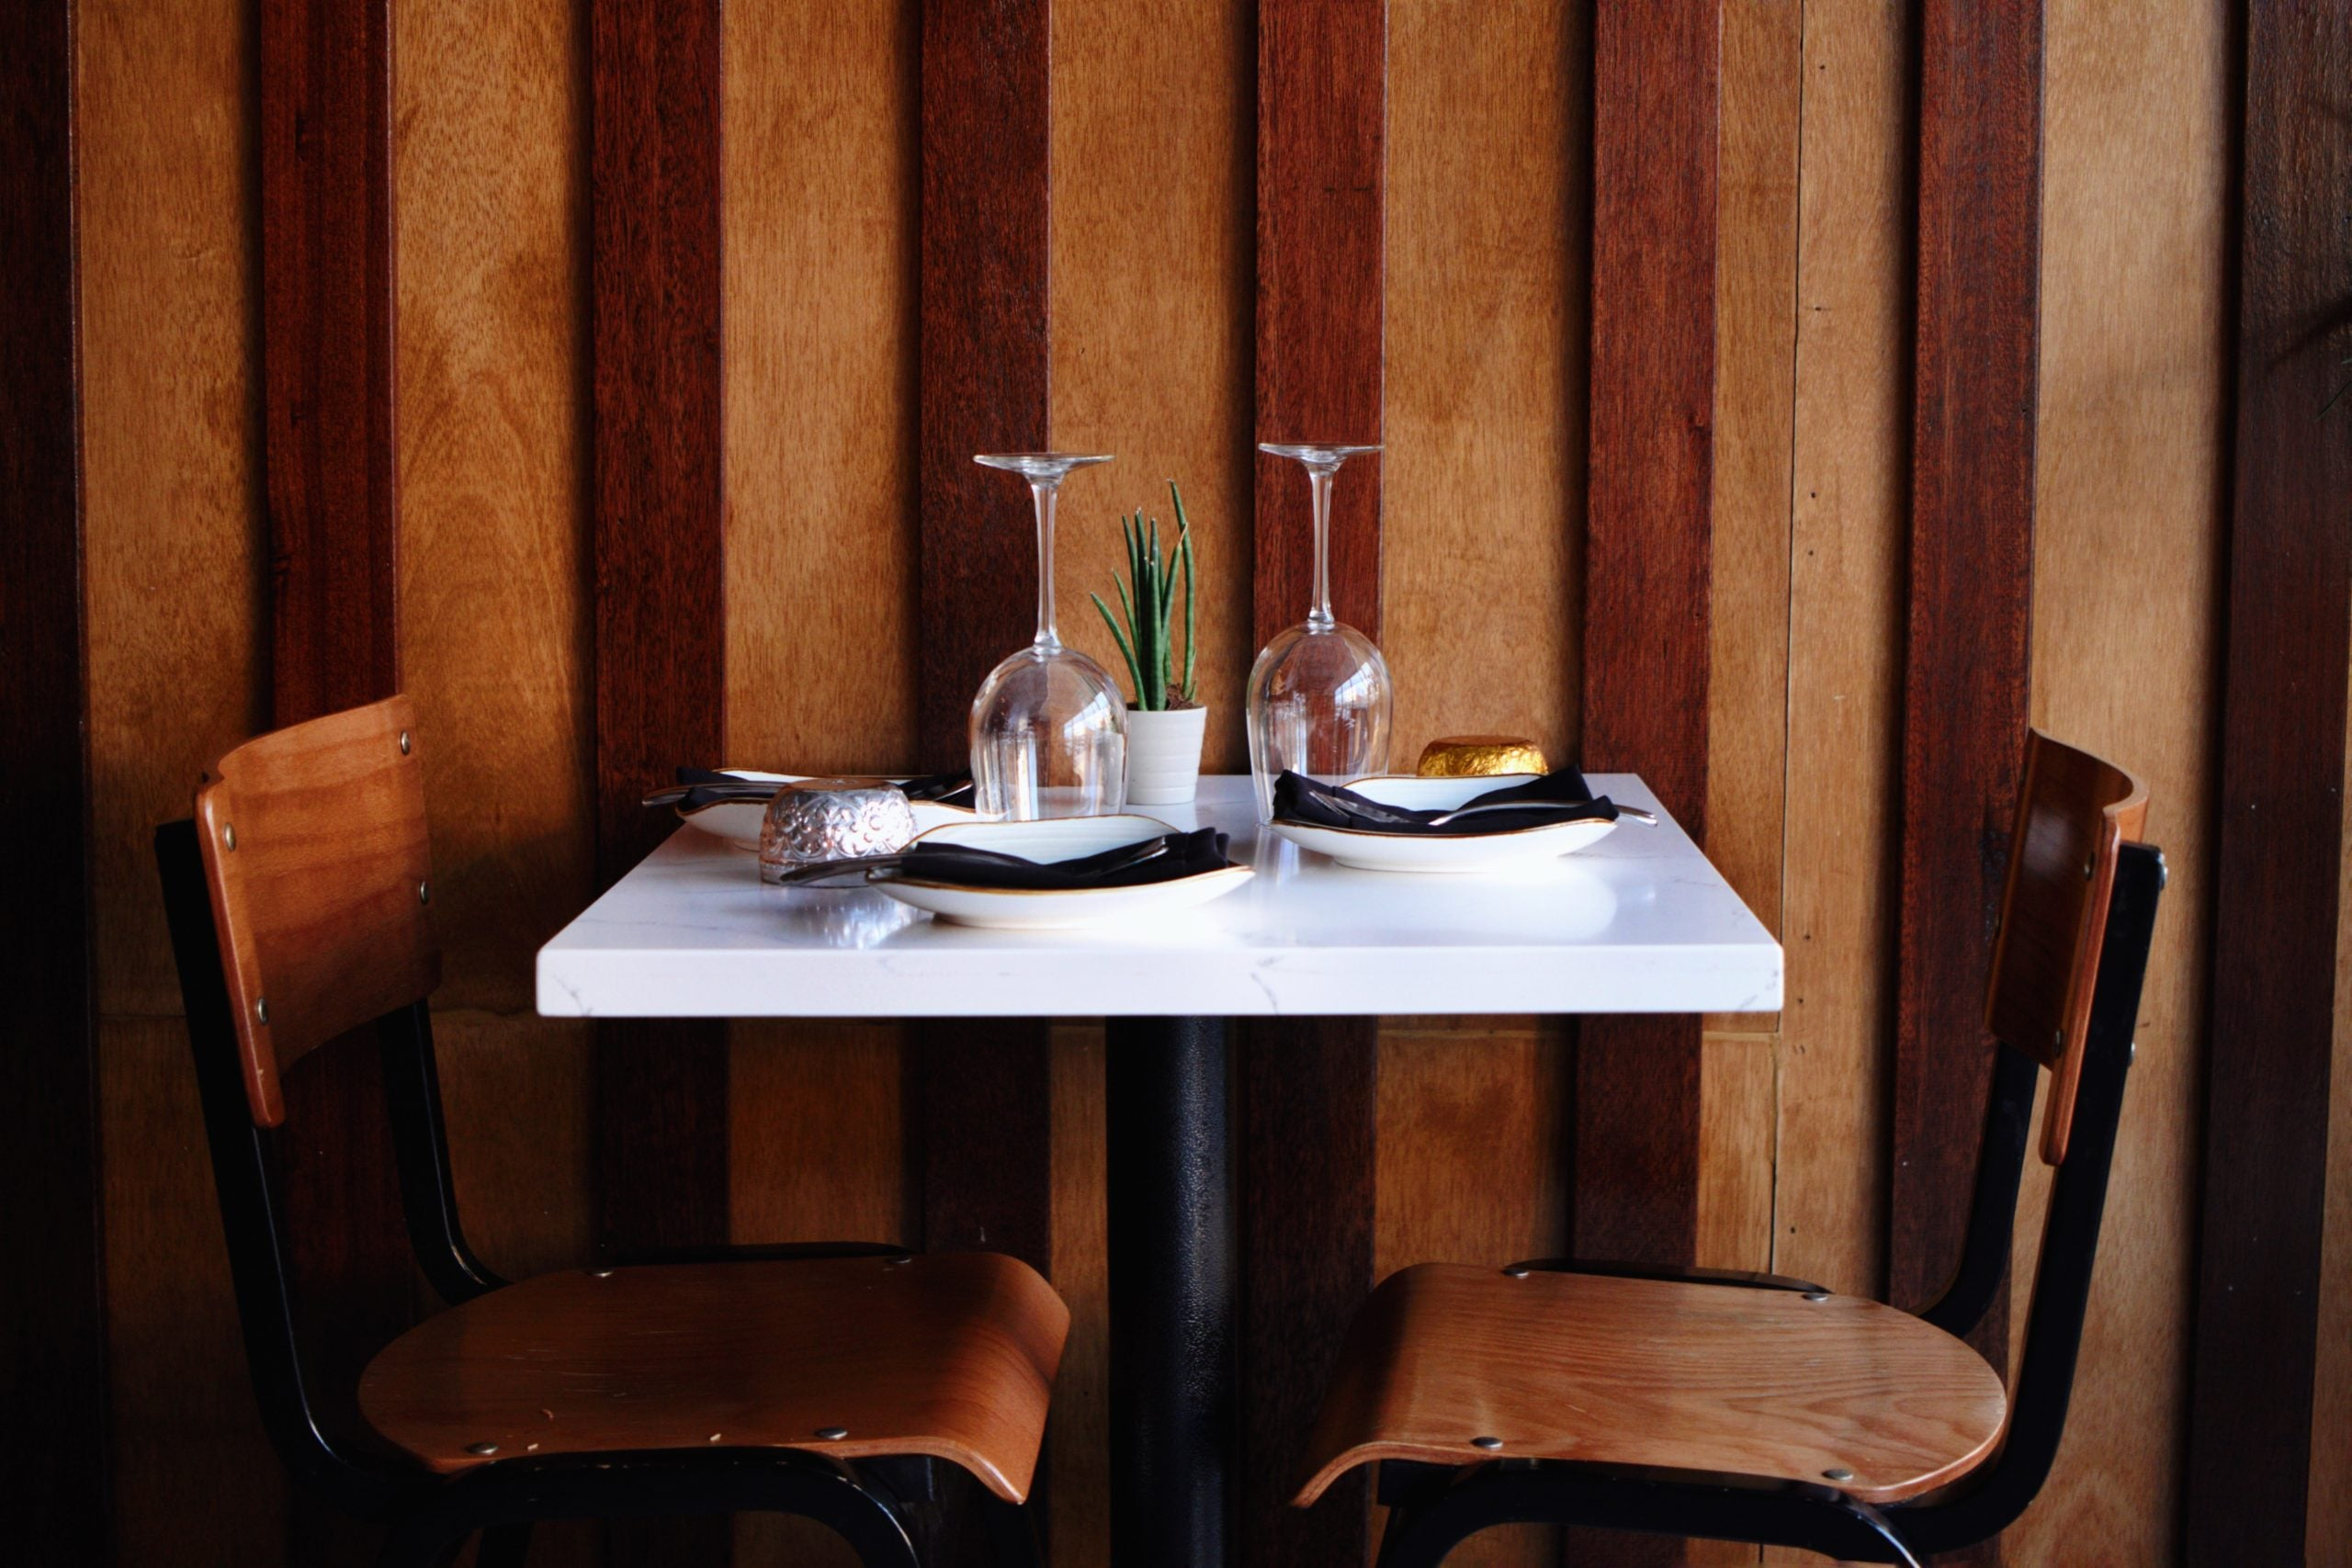 Chalawan table for two